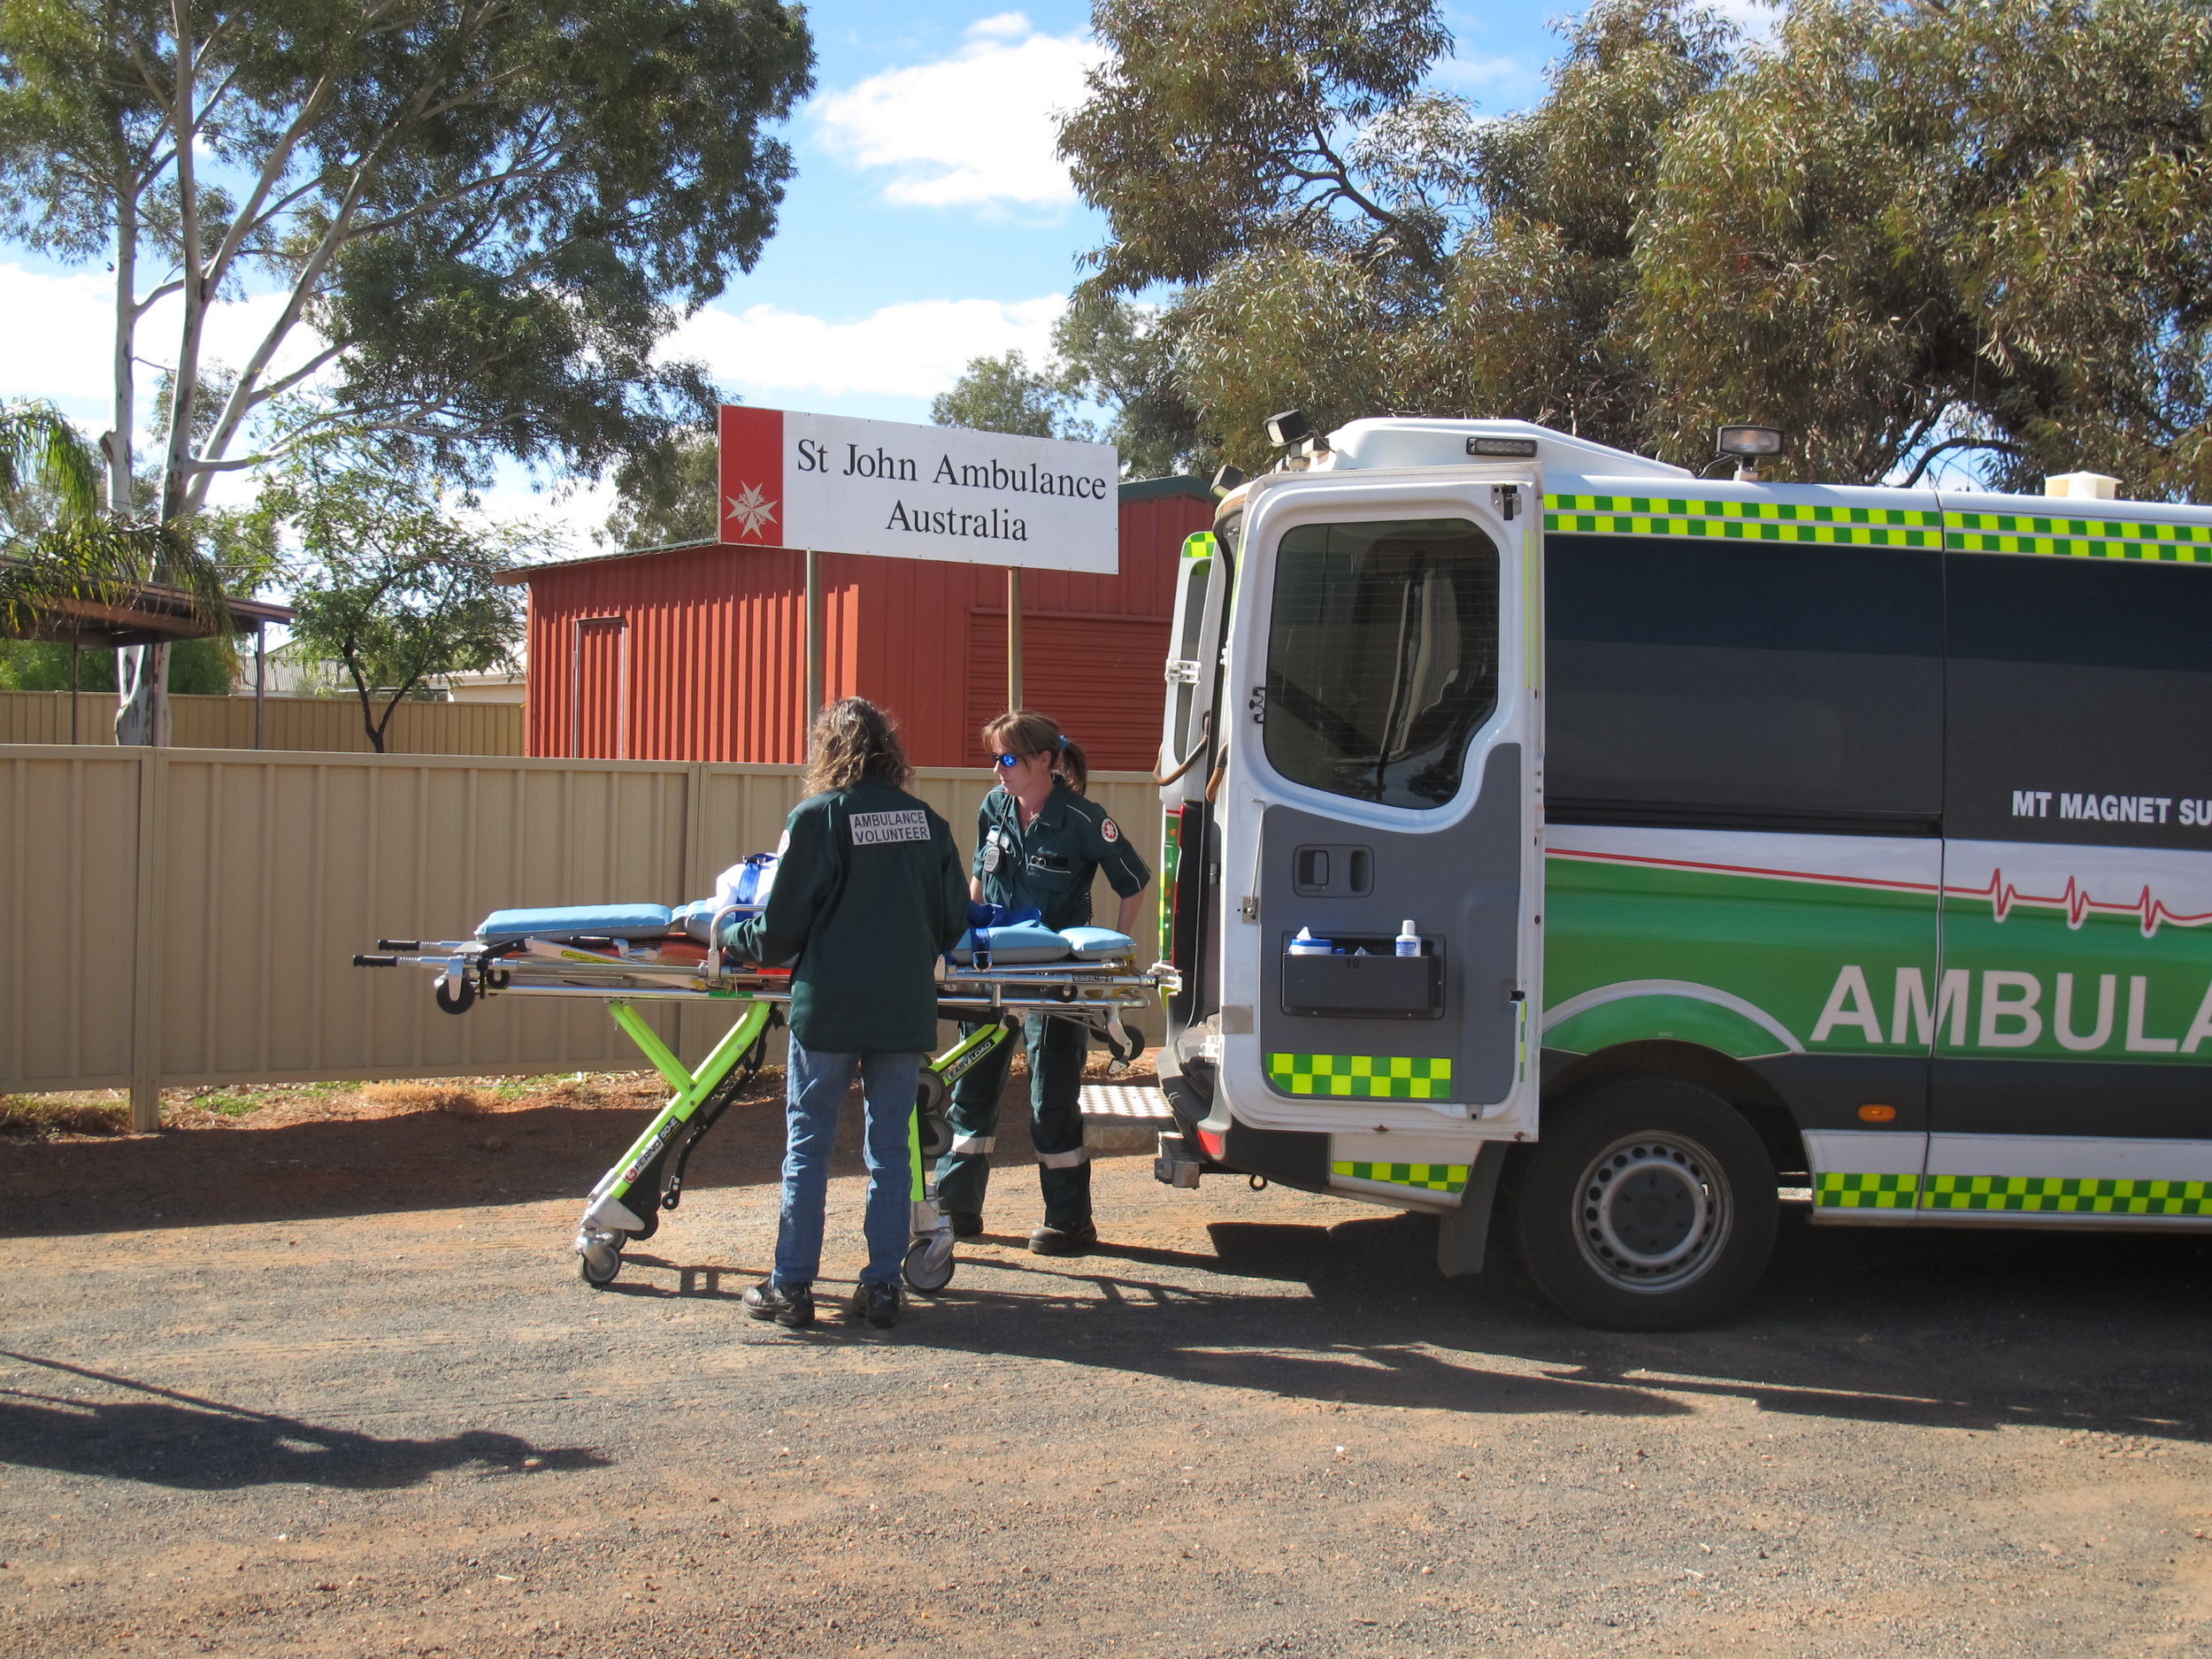 Ramelius Resources employees volunteering in the Mount Magnet community.